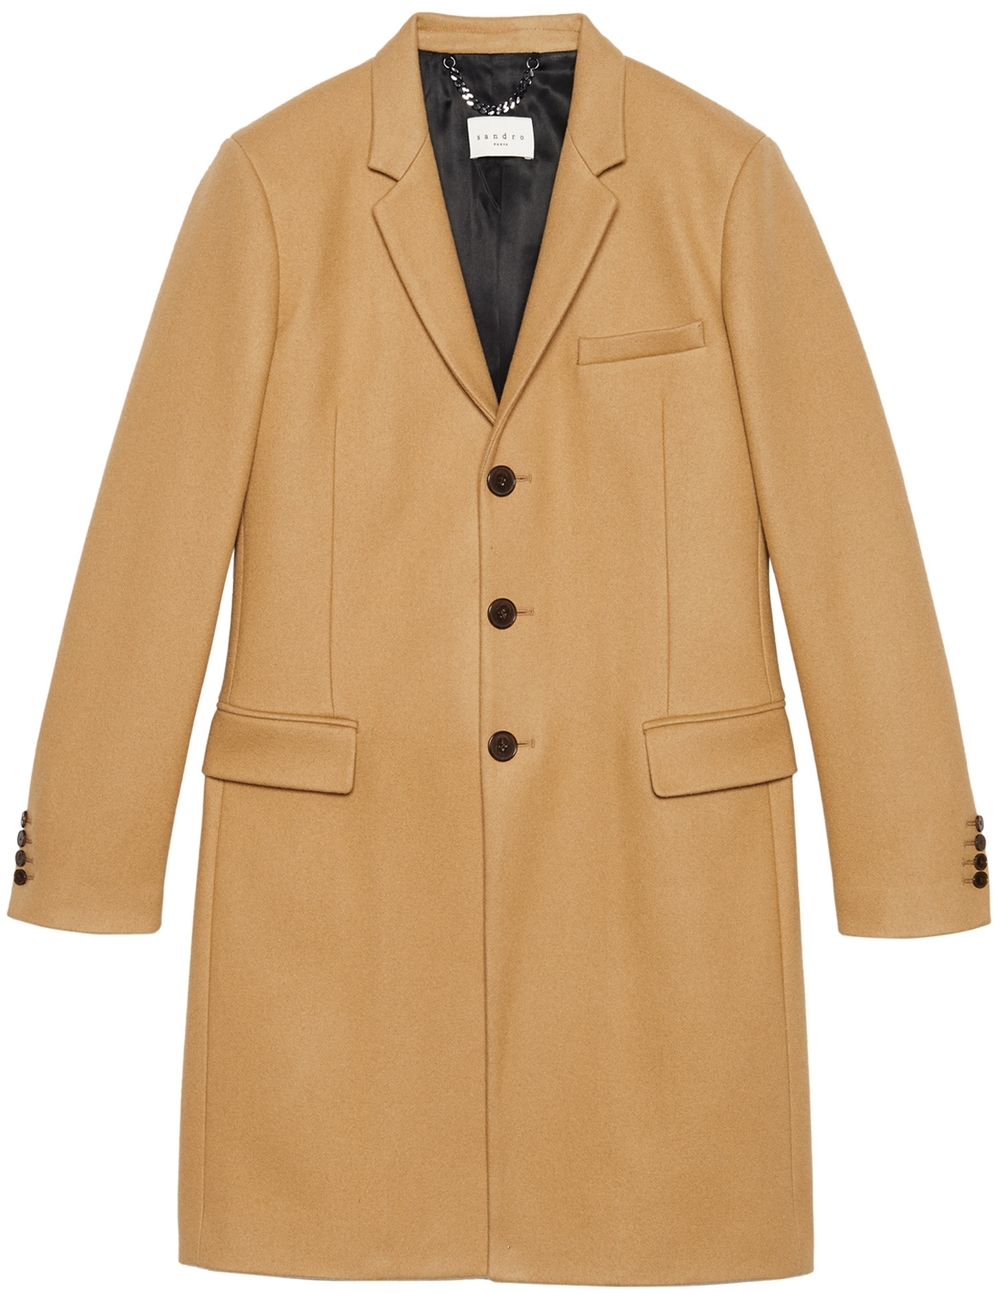 Sandro Apollo Coat, $775